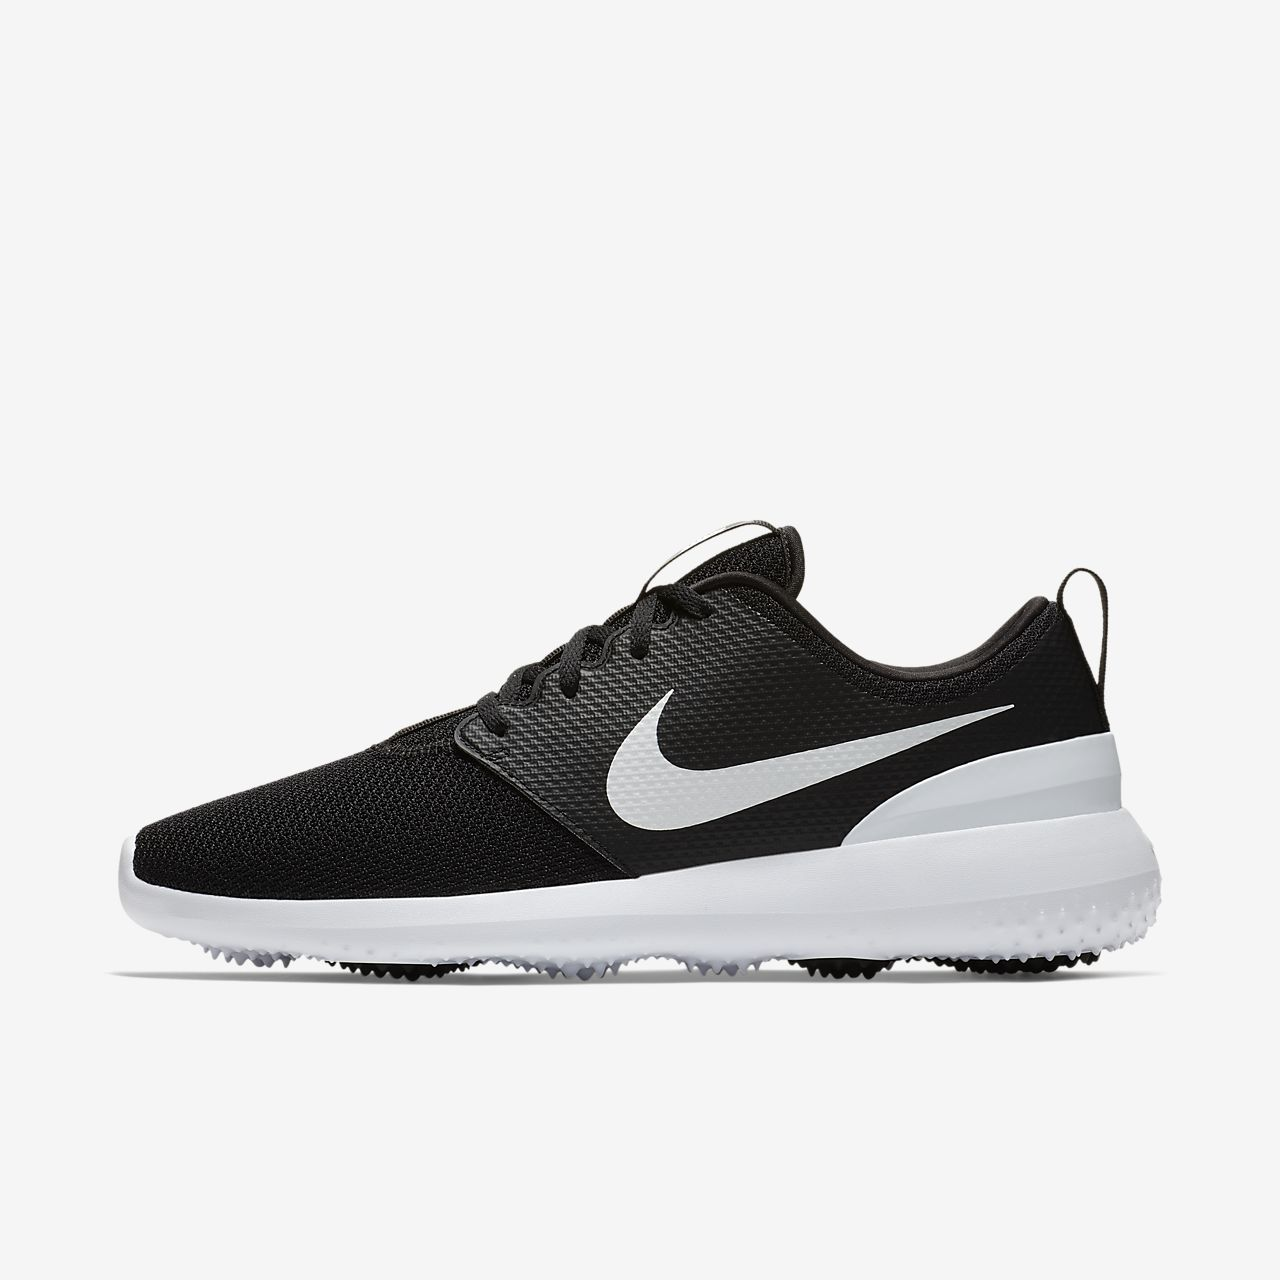 premium selection 7cc6e a31fe Nike Roshe G Men's Golf Shoe